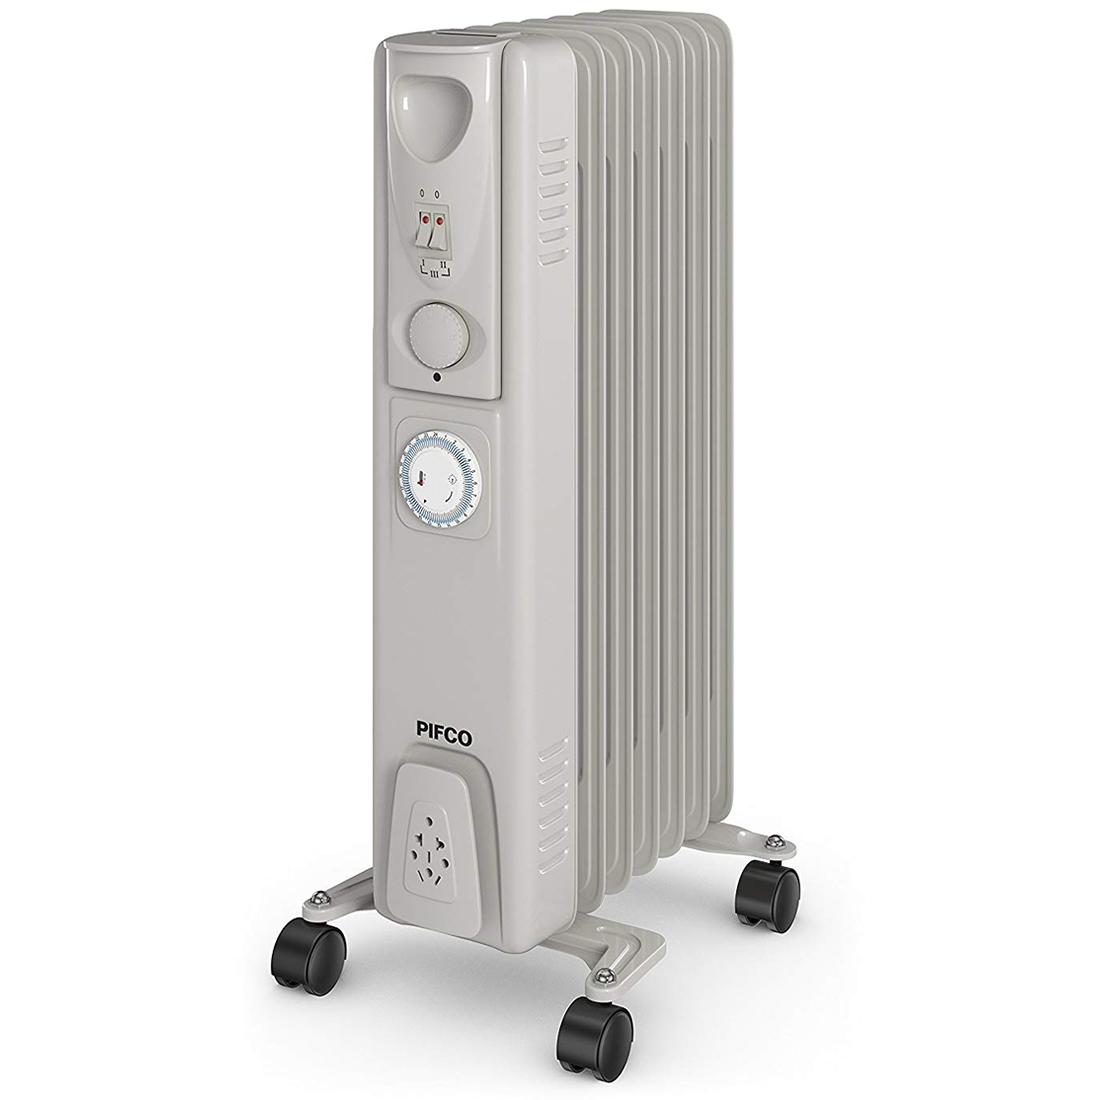 Image of 1.5kW Oil-Filled Radiator 3 Power Settings Timer White